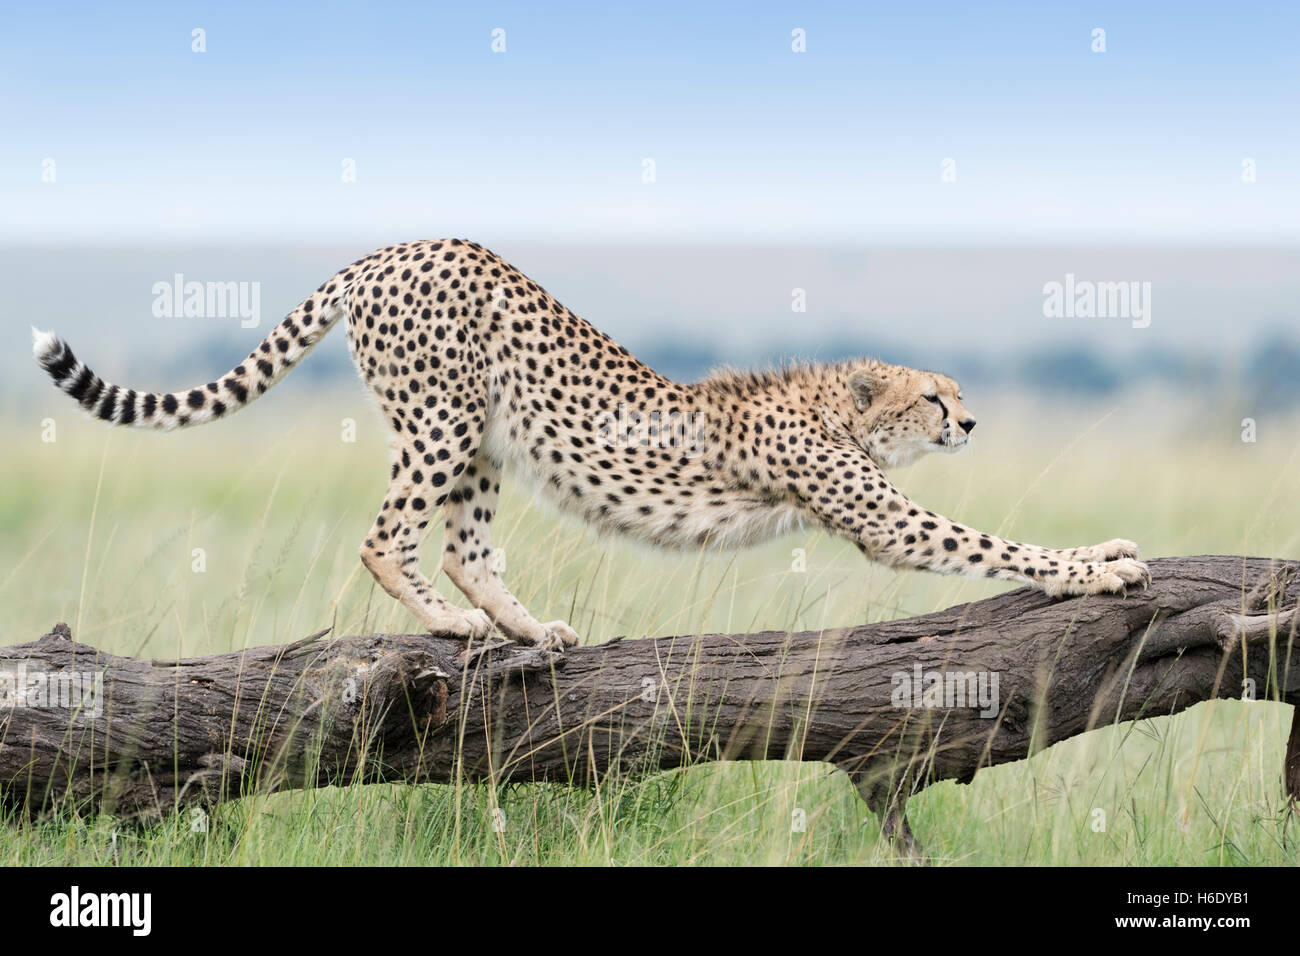 Cheetah (Acinonix jubatus) stretching on fallen tree, Maasai Mara National Reserve, Kenya - Stock Image